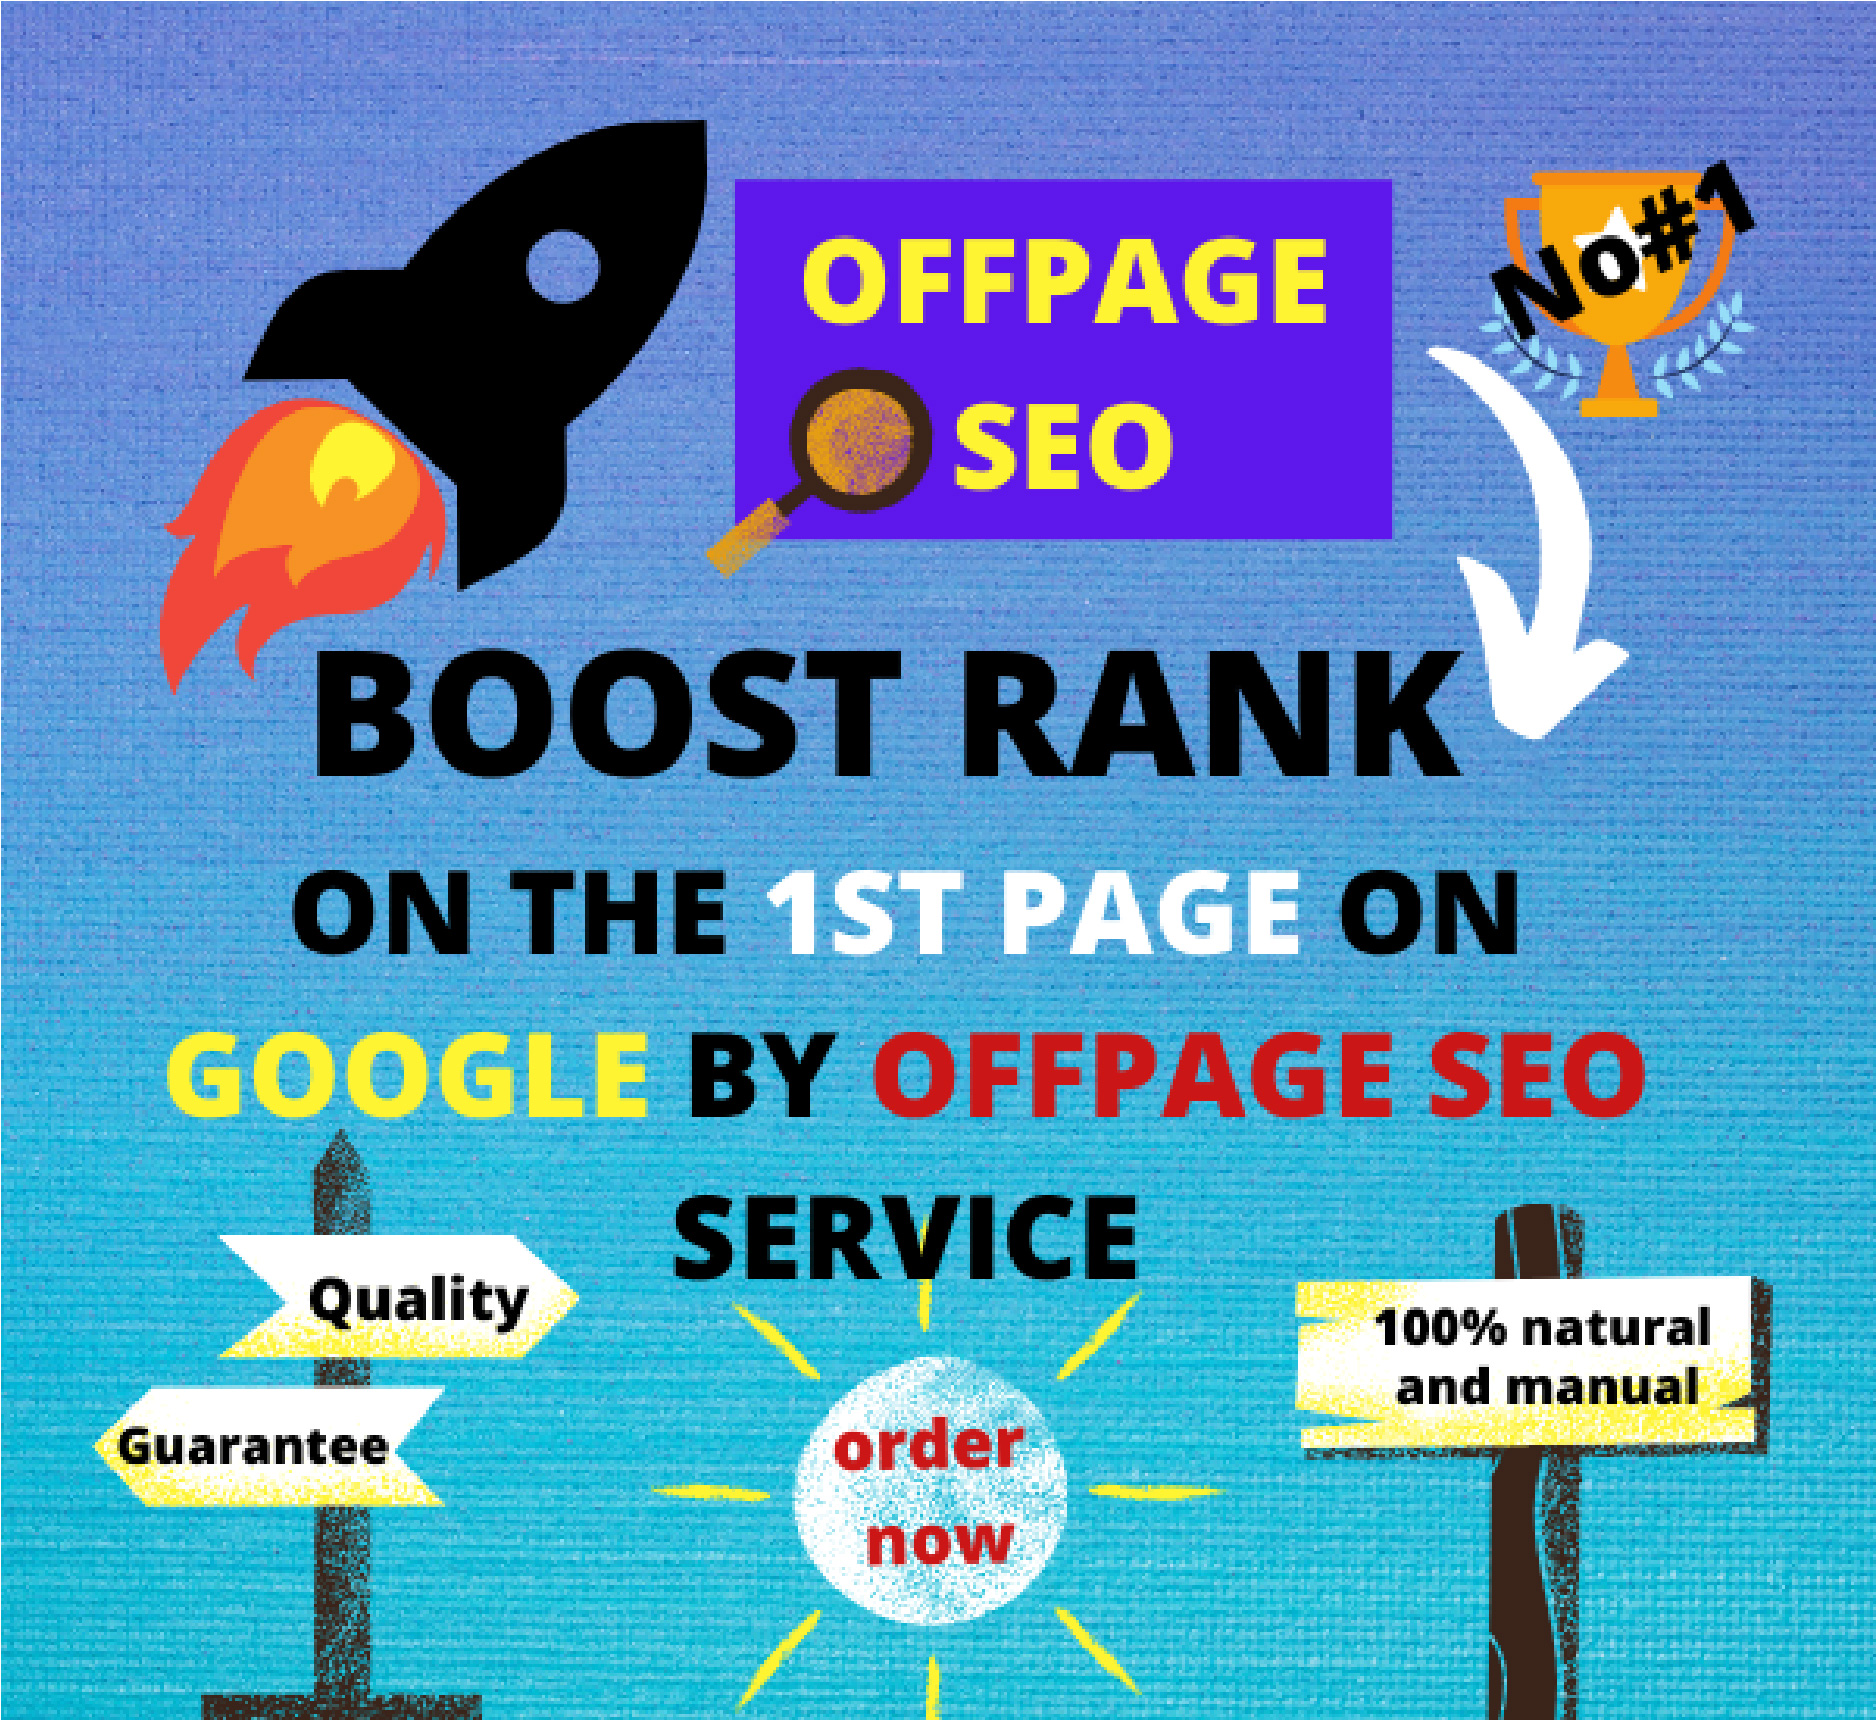 Boost your website by doing 100 permanent natural mix backlinks and high-quality link building.